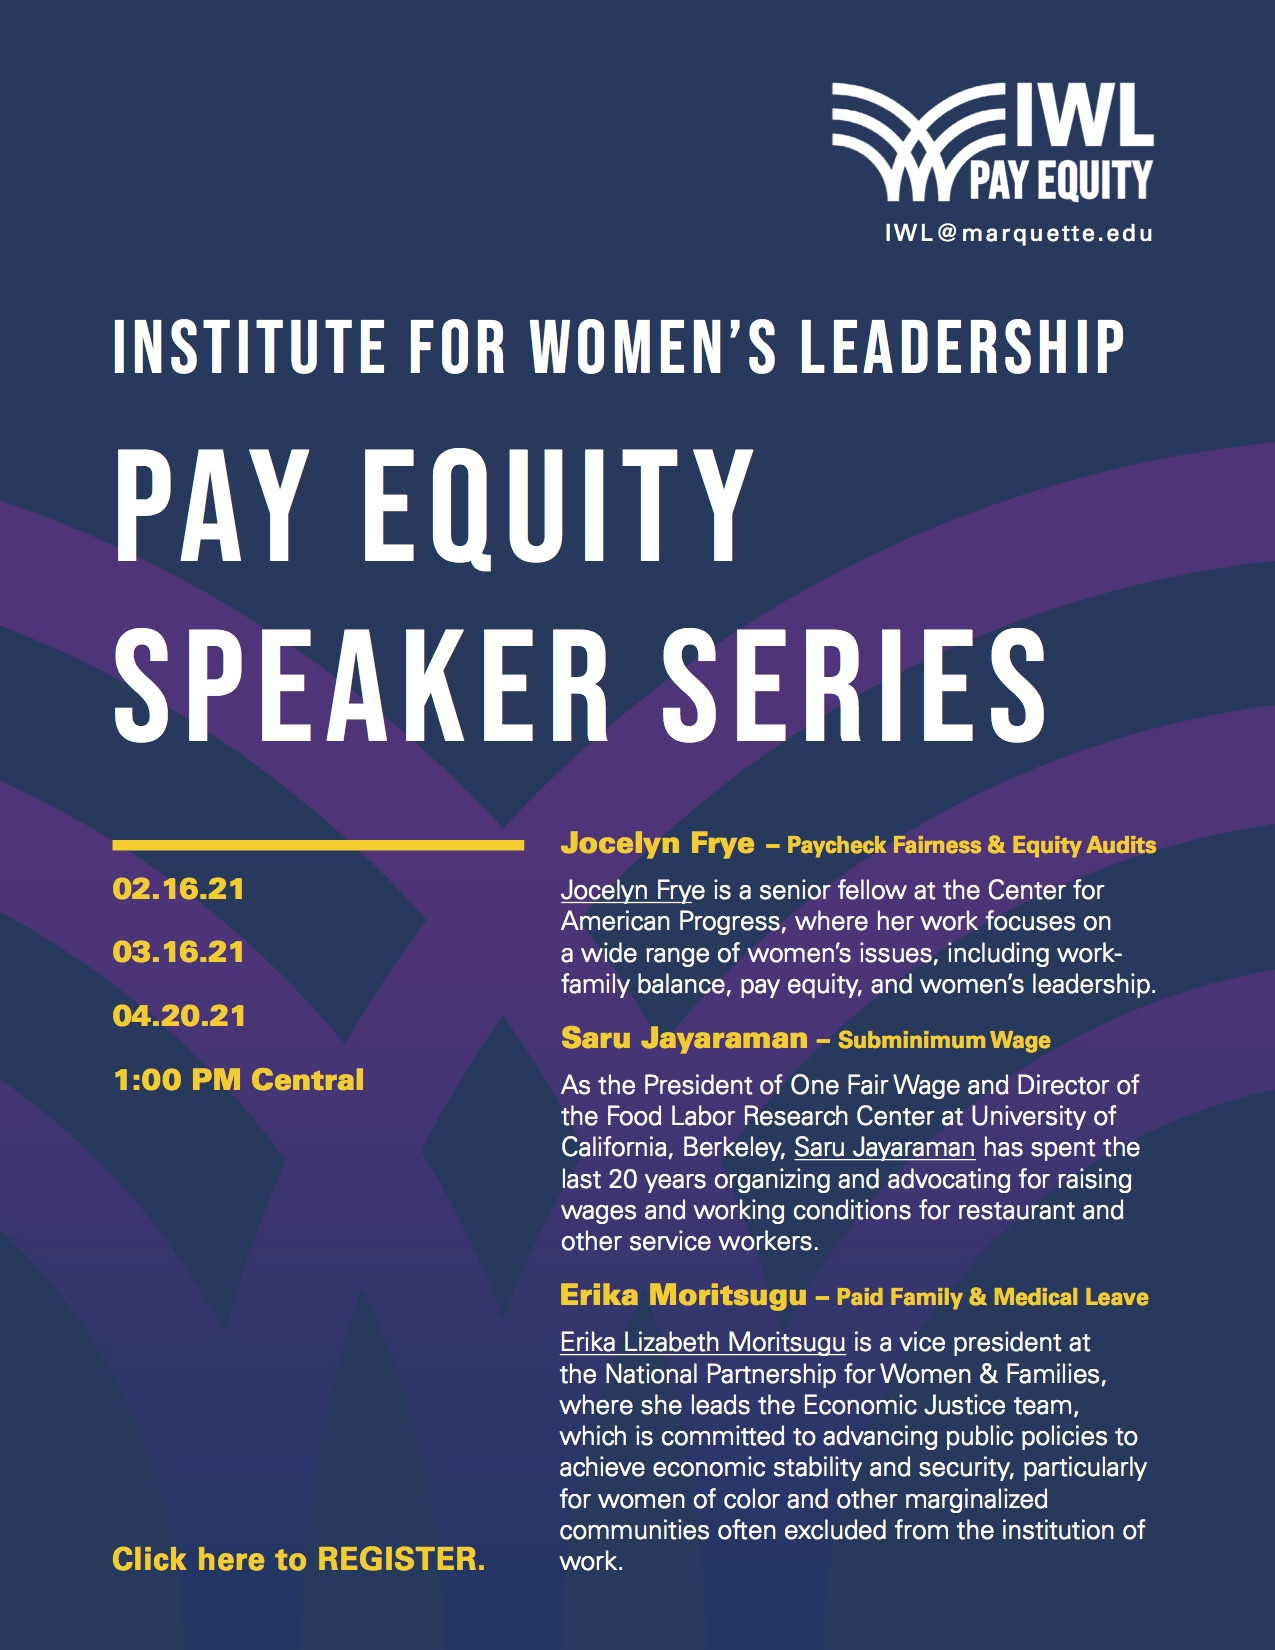 IWL Pay Equity Series